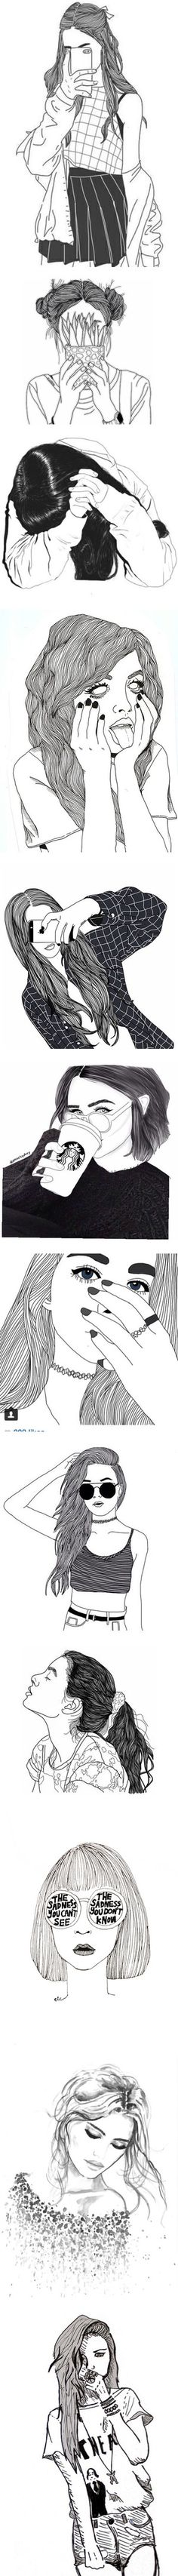 """drawings"" by bananafrog ❤ liked on Polyvore"